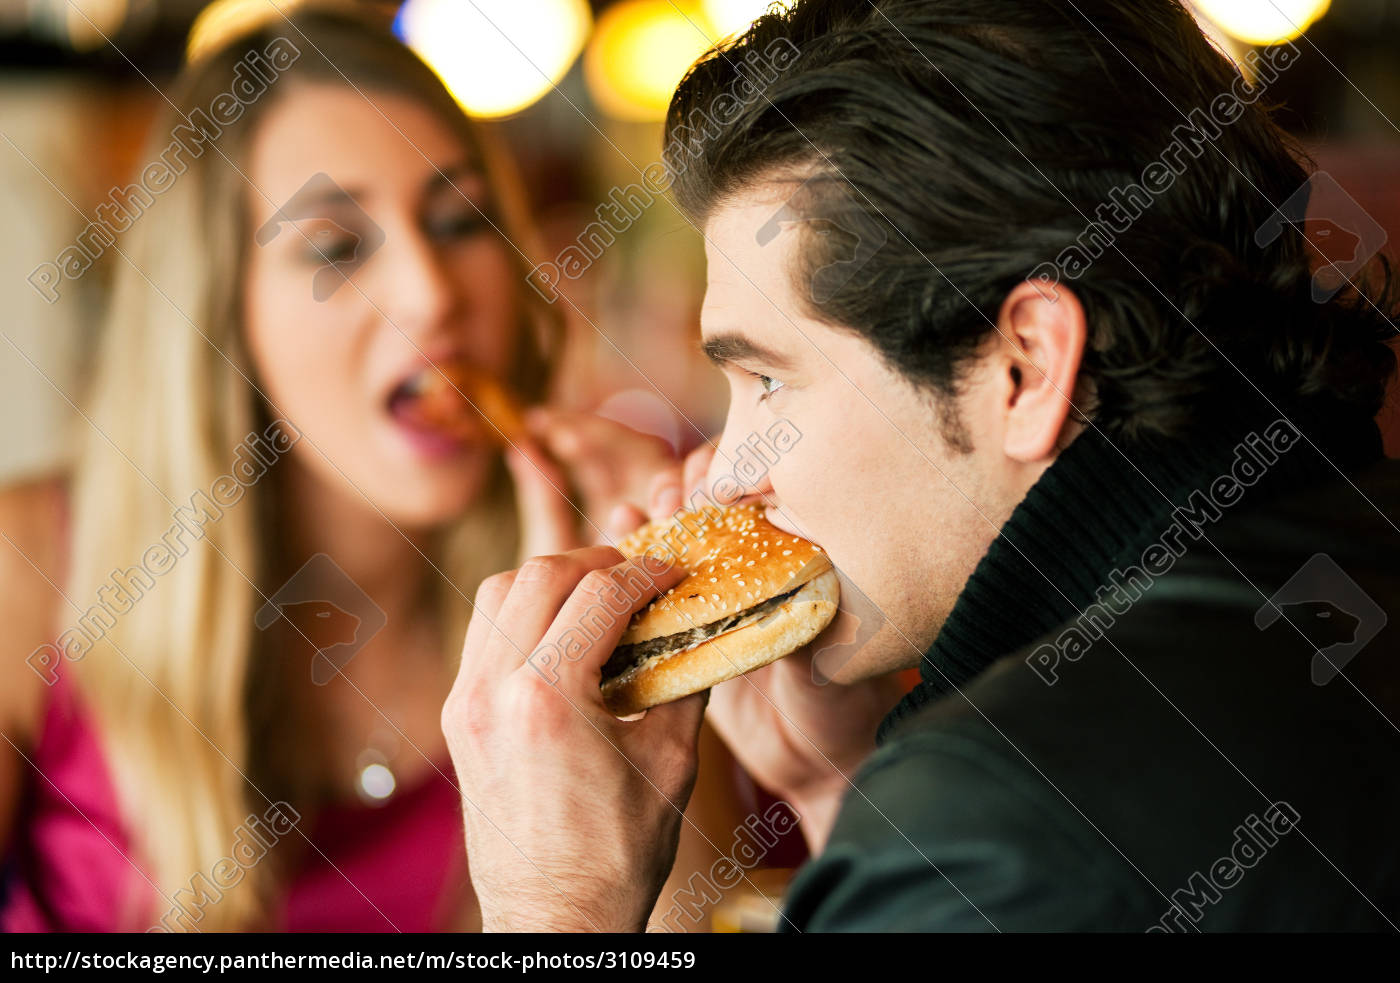 couple, in, restaurant, eating, fast, food - 3109459